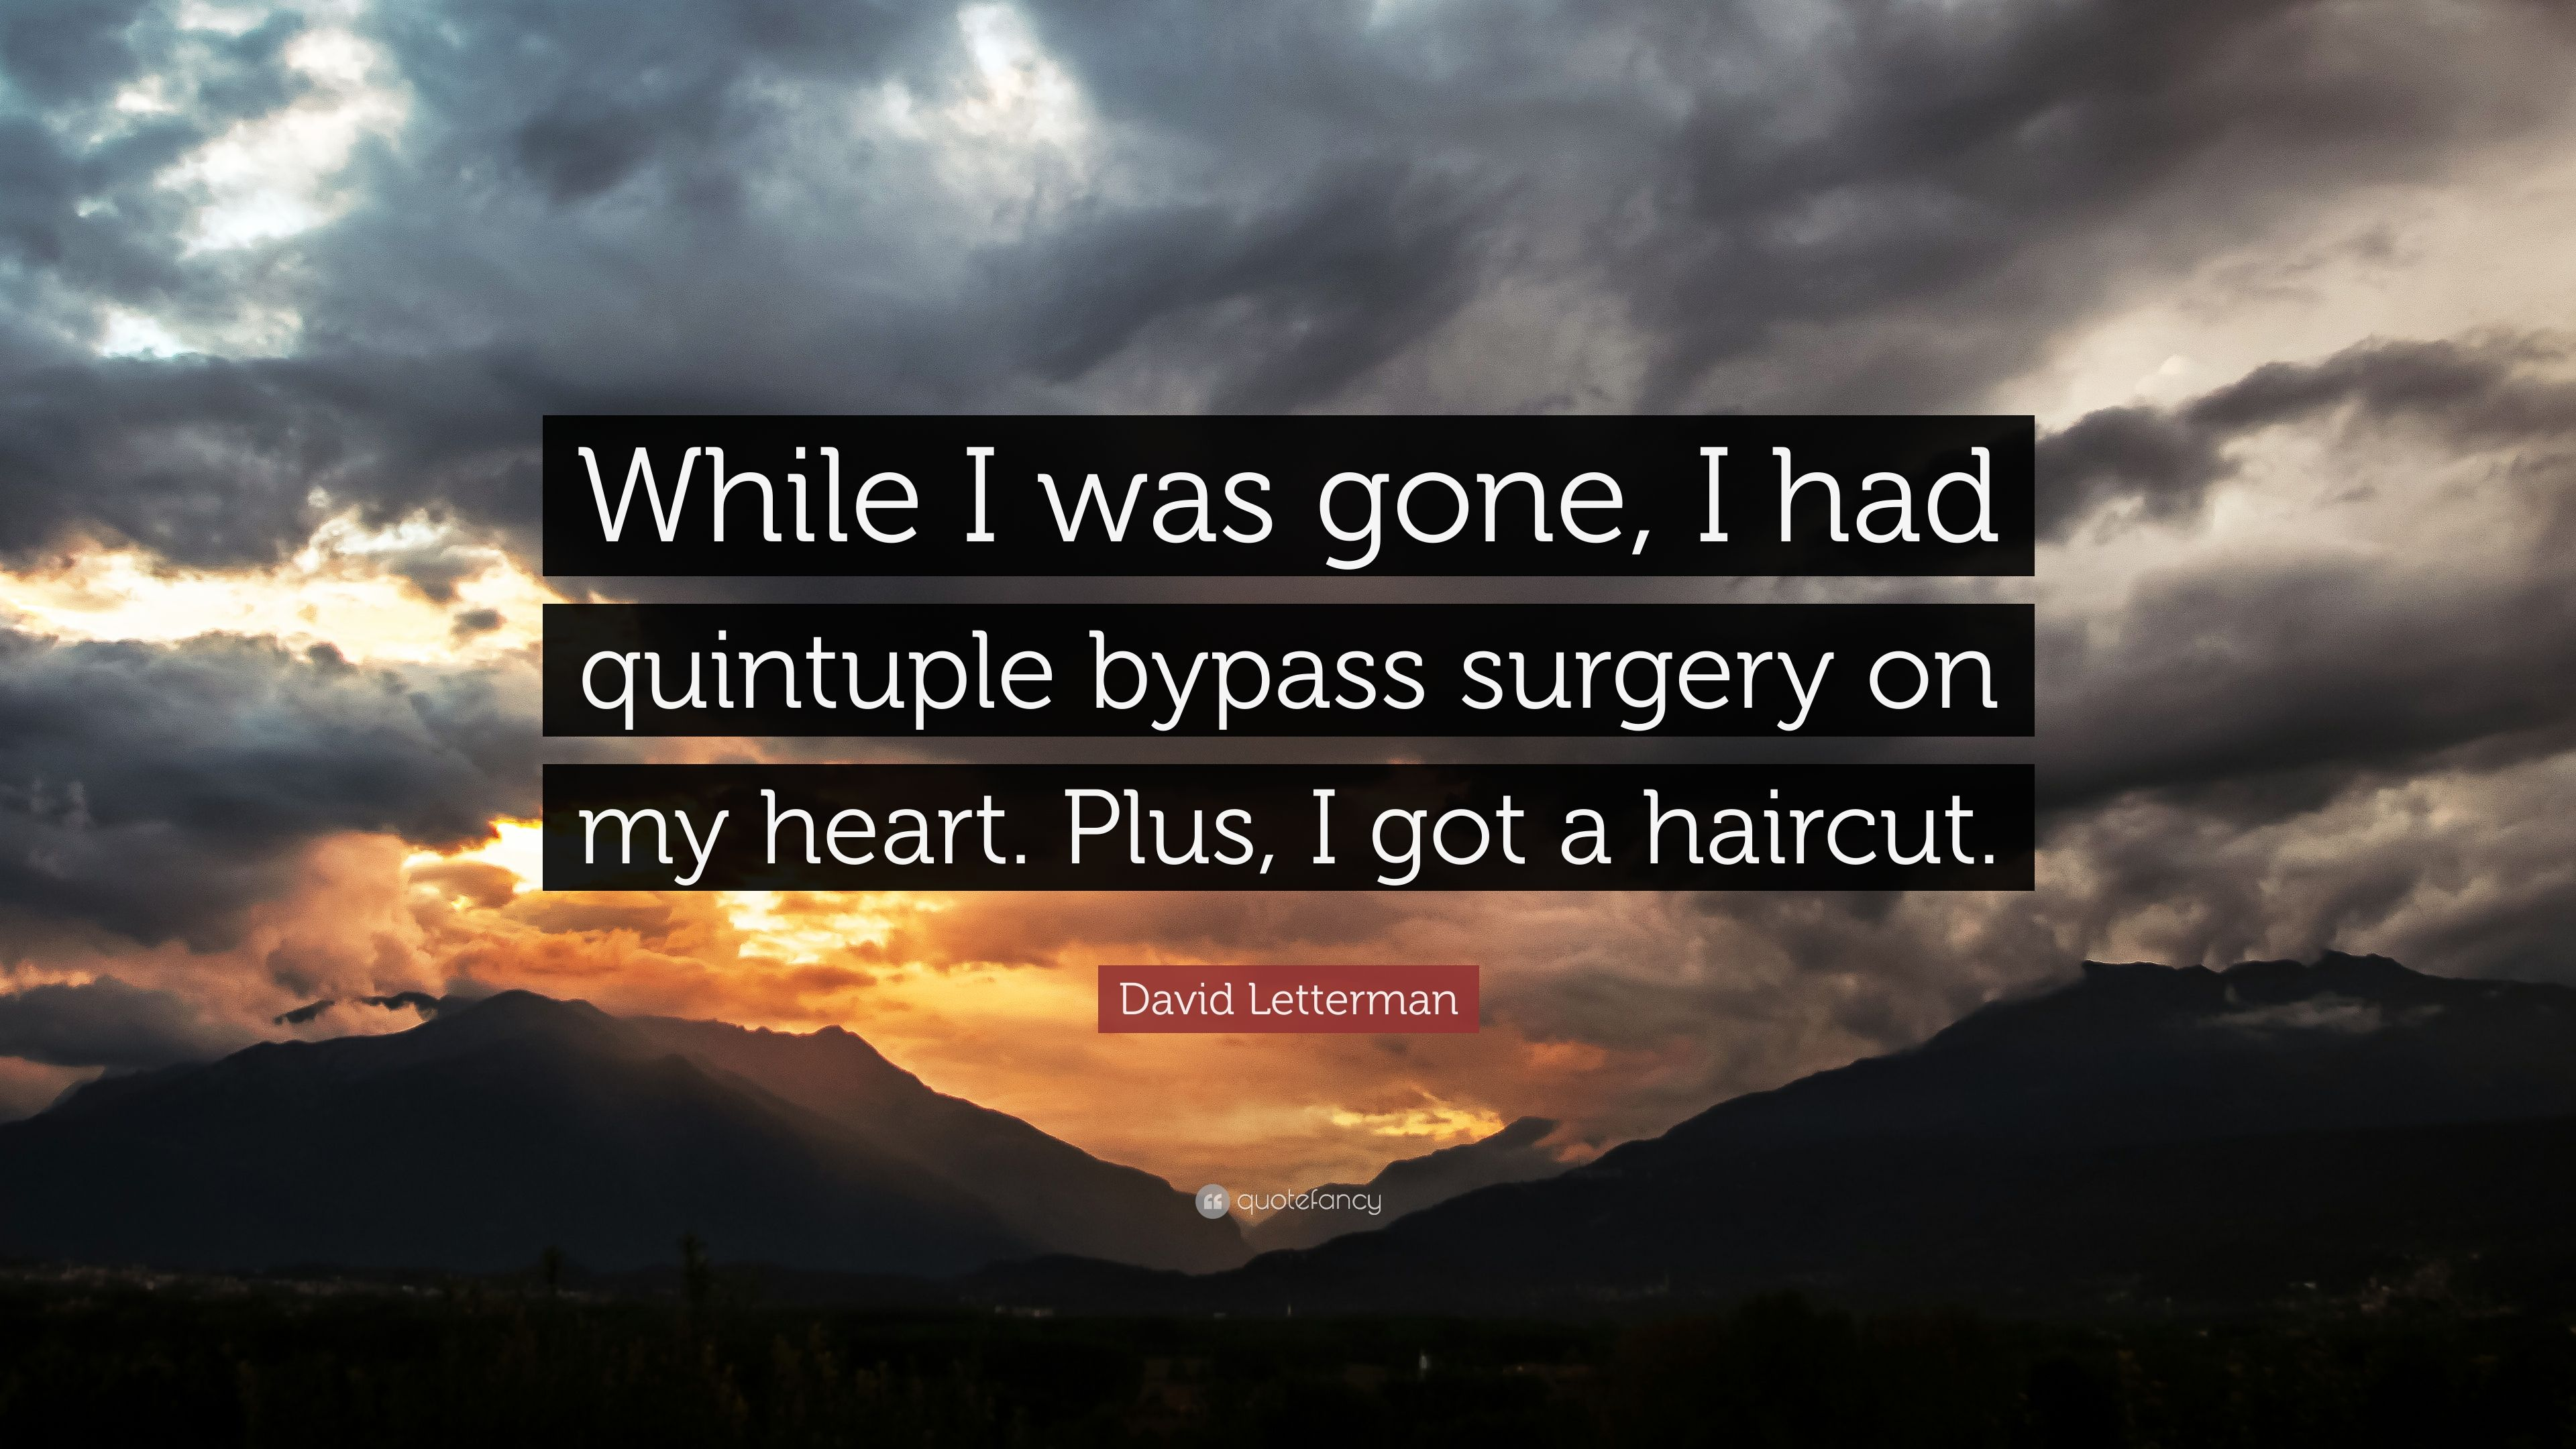 David Letterman Quote While I Was Gone Had Quintuple Bypass Surgery On